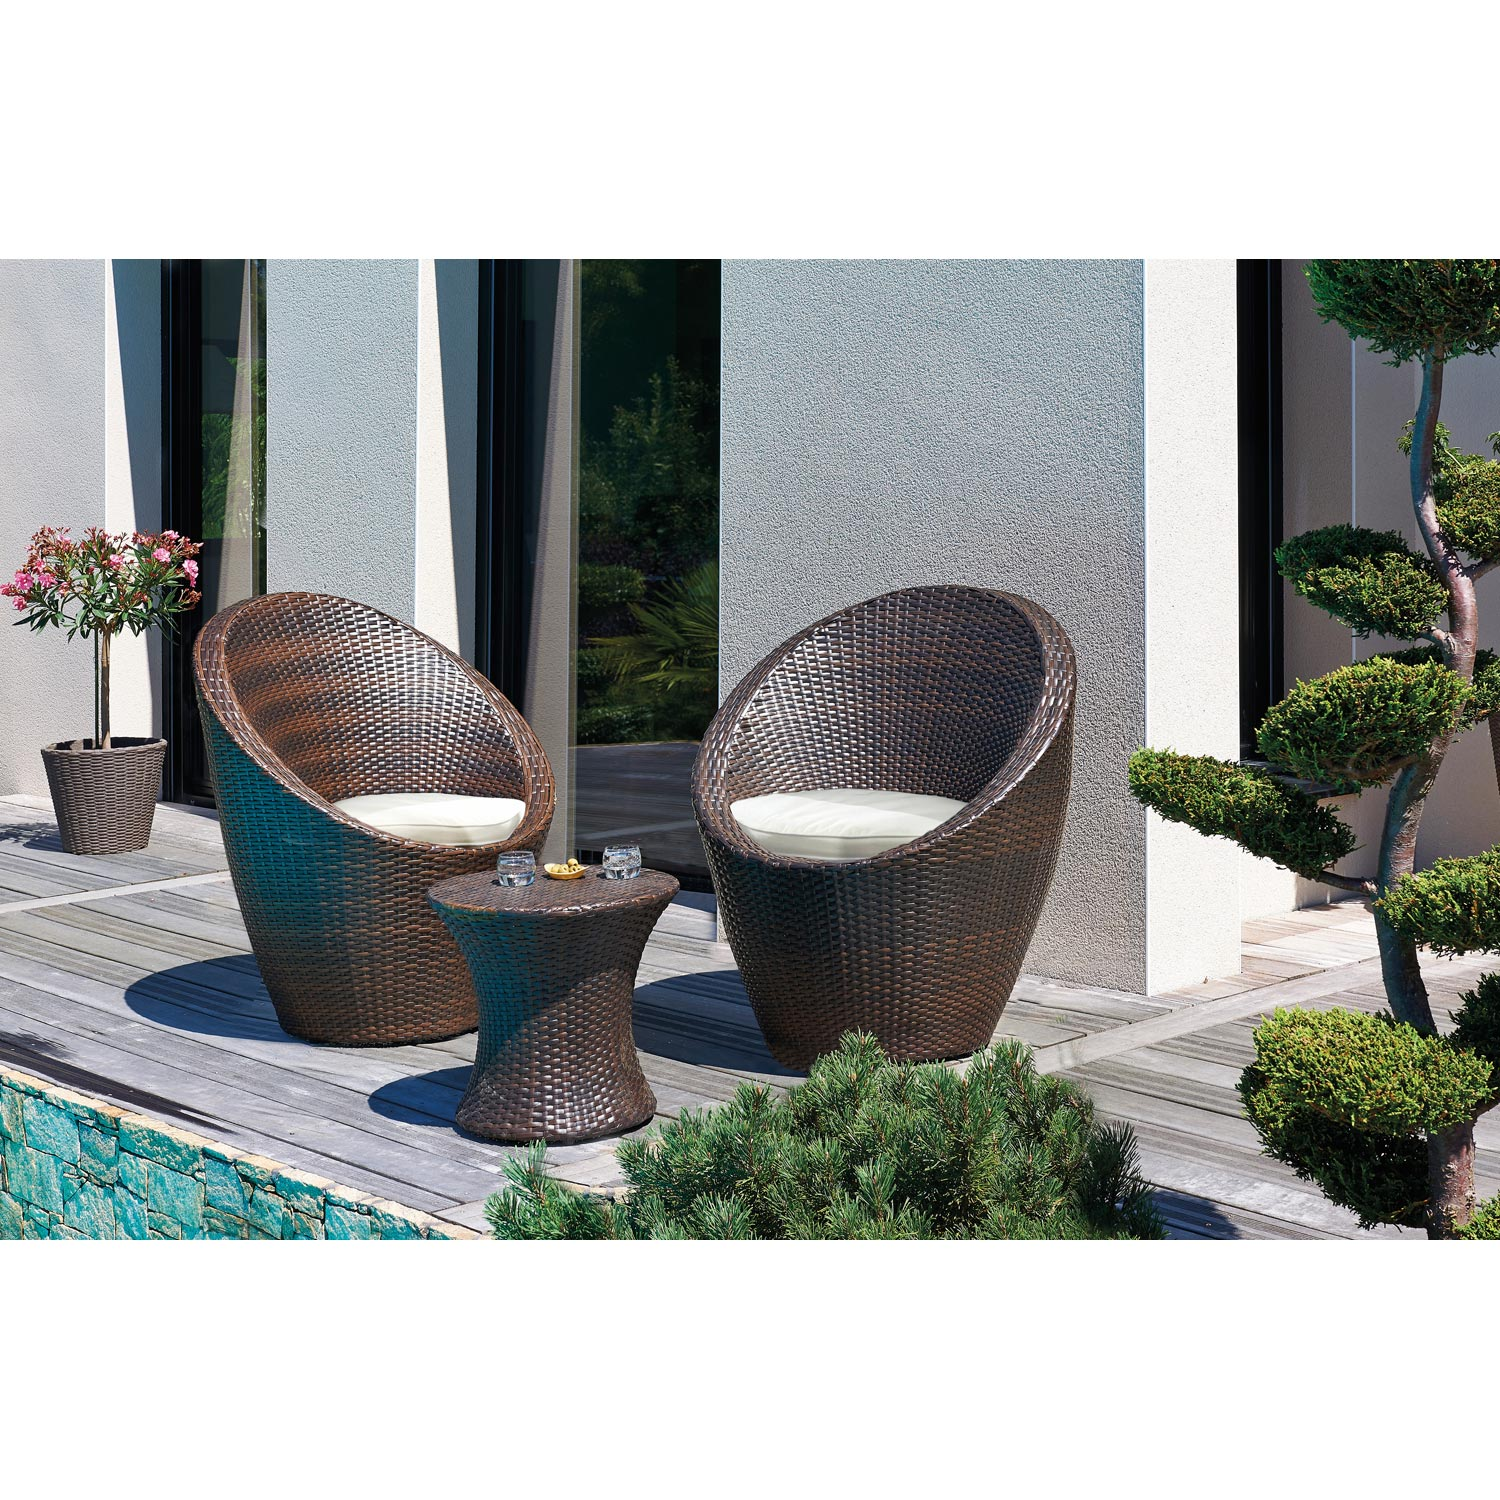 Salon bas de jardin totem r sine tress e chocolat 1 table - Salon de jardin acier ...